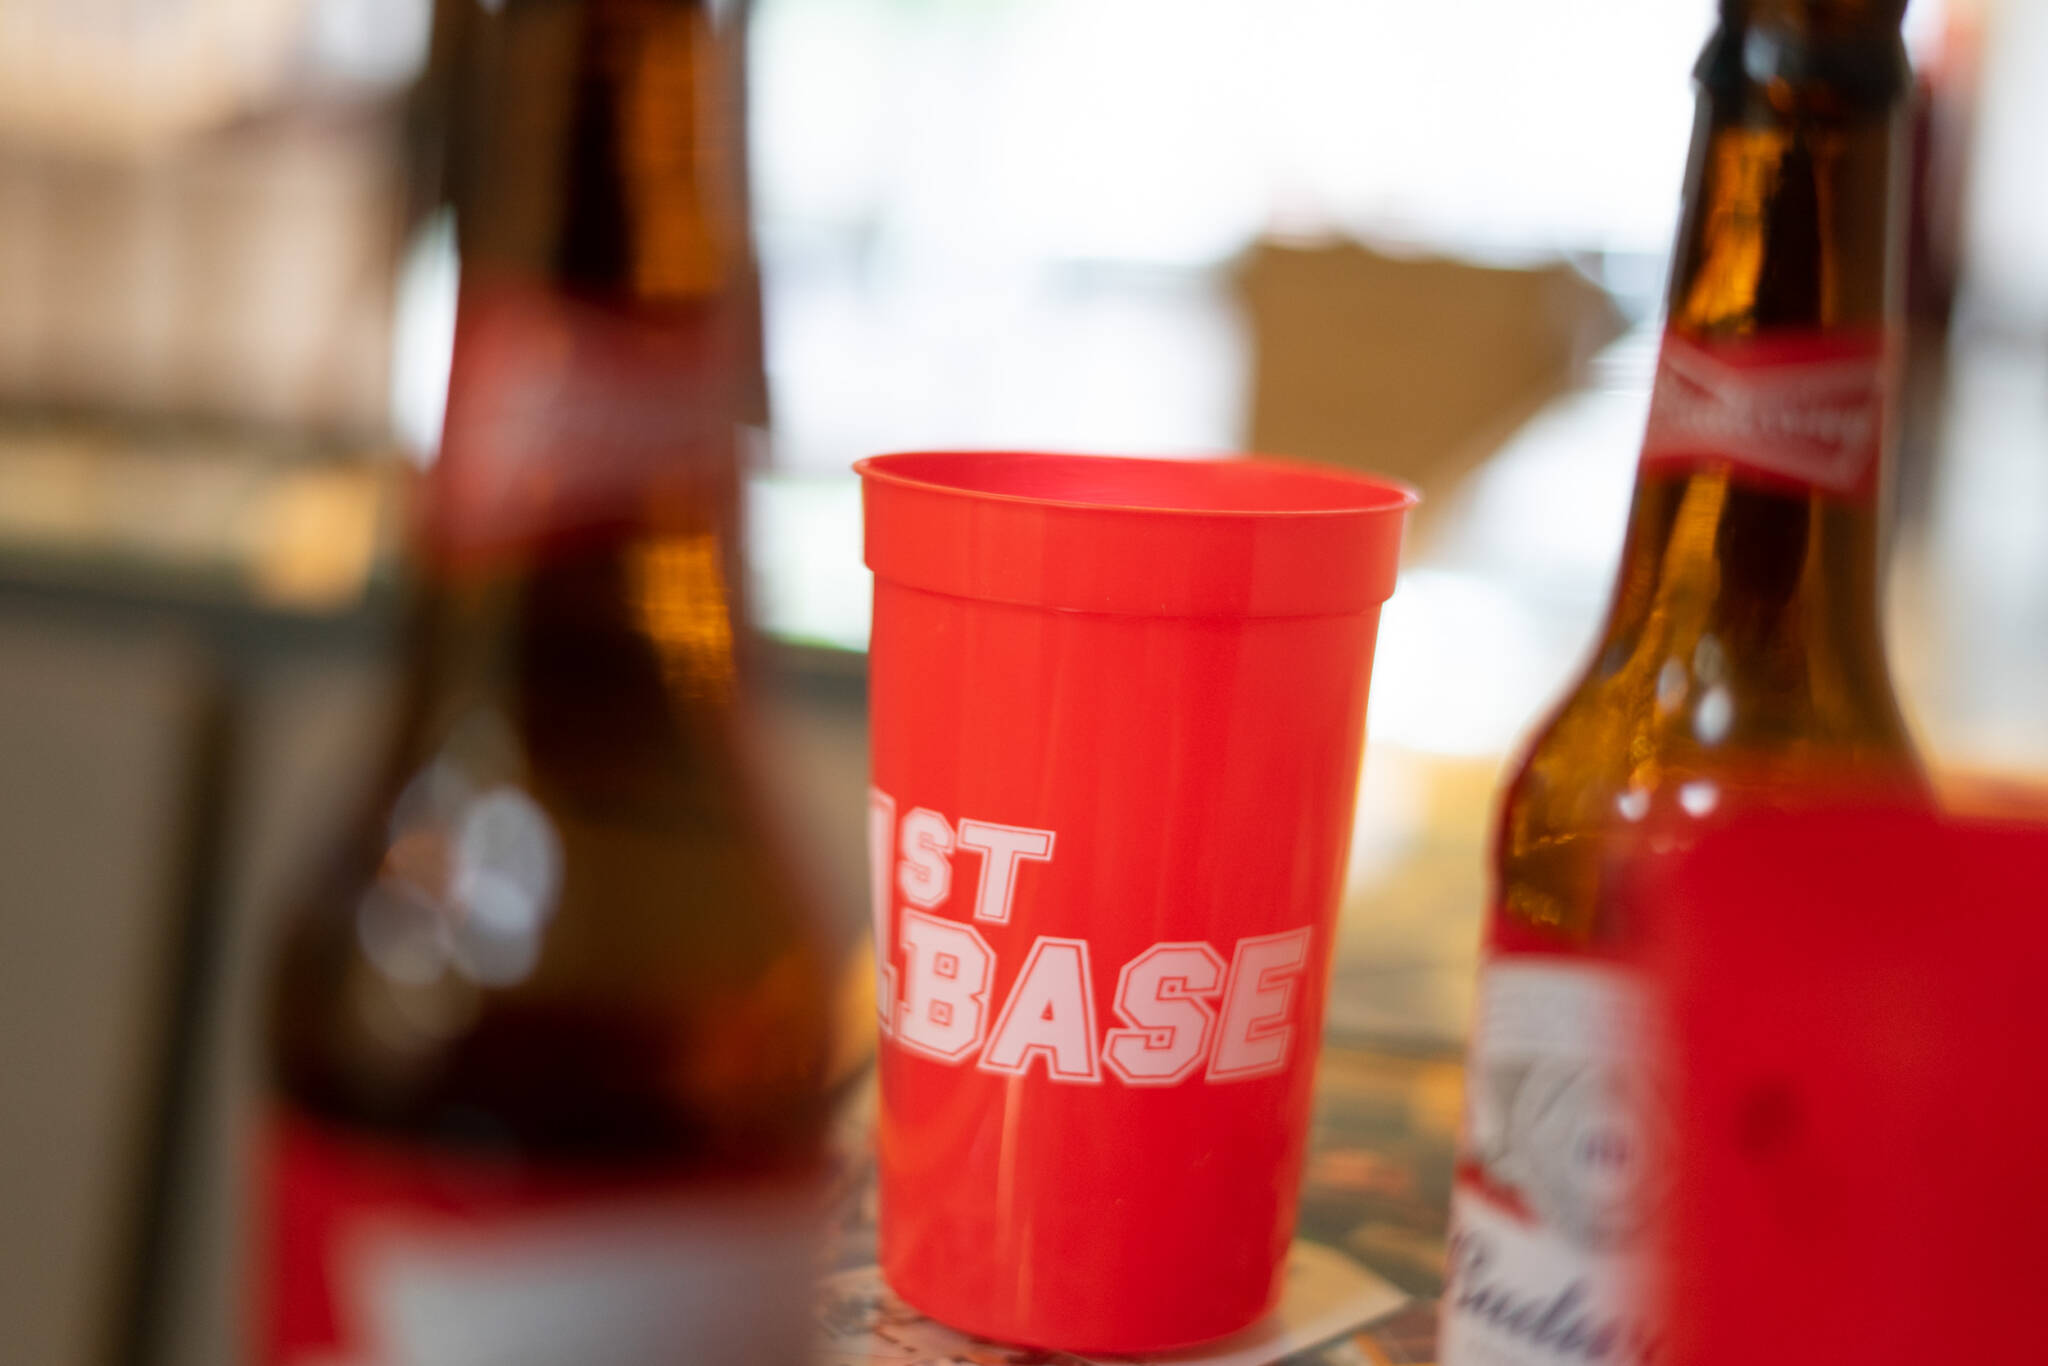 beer bottle and red cup 1st base